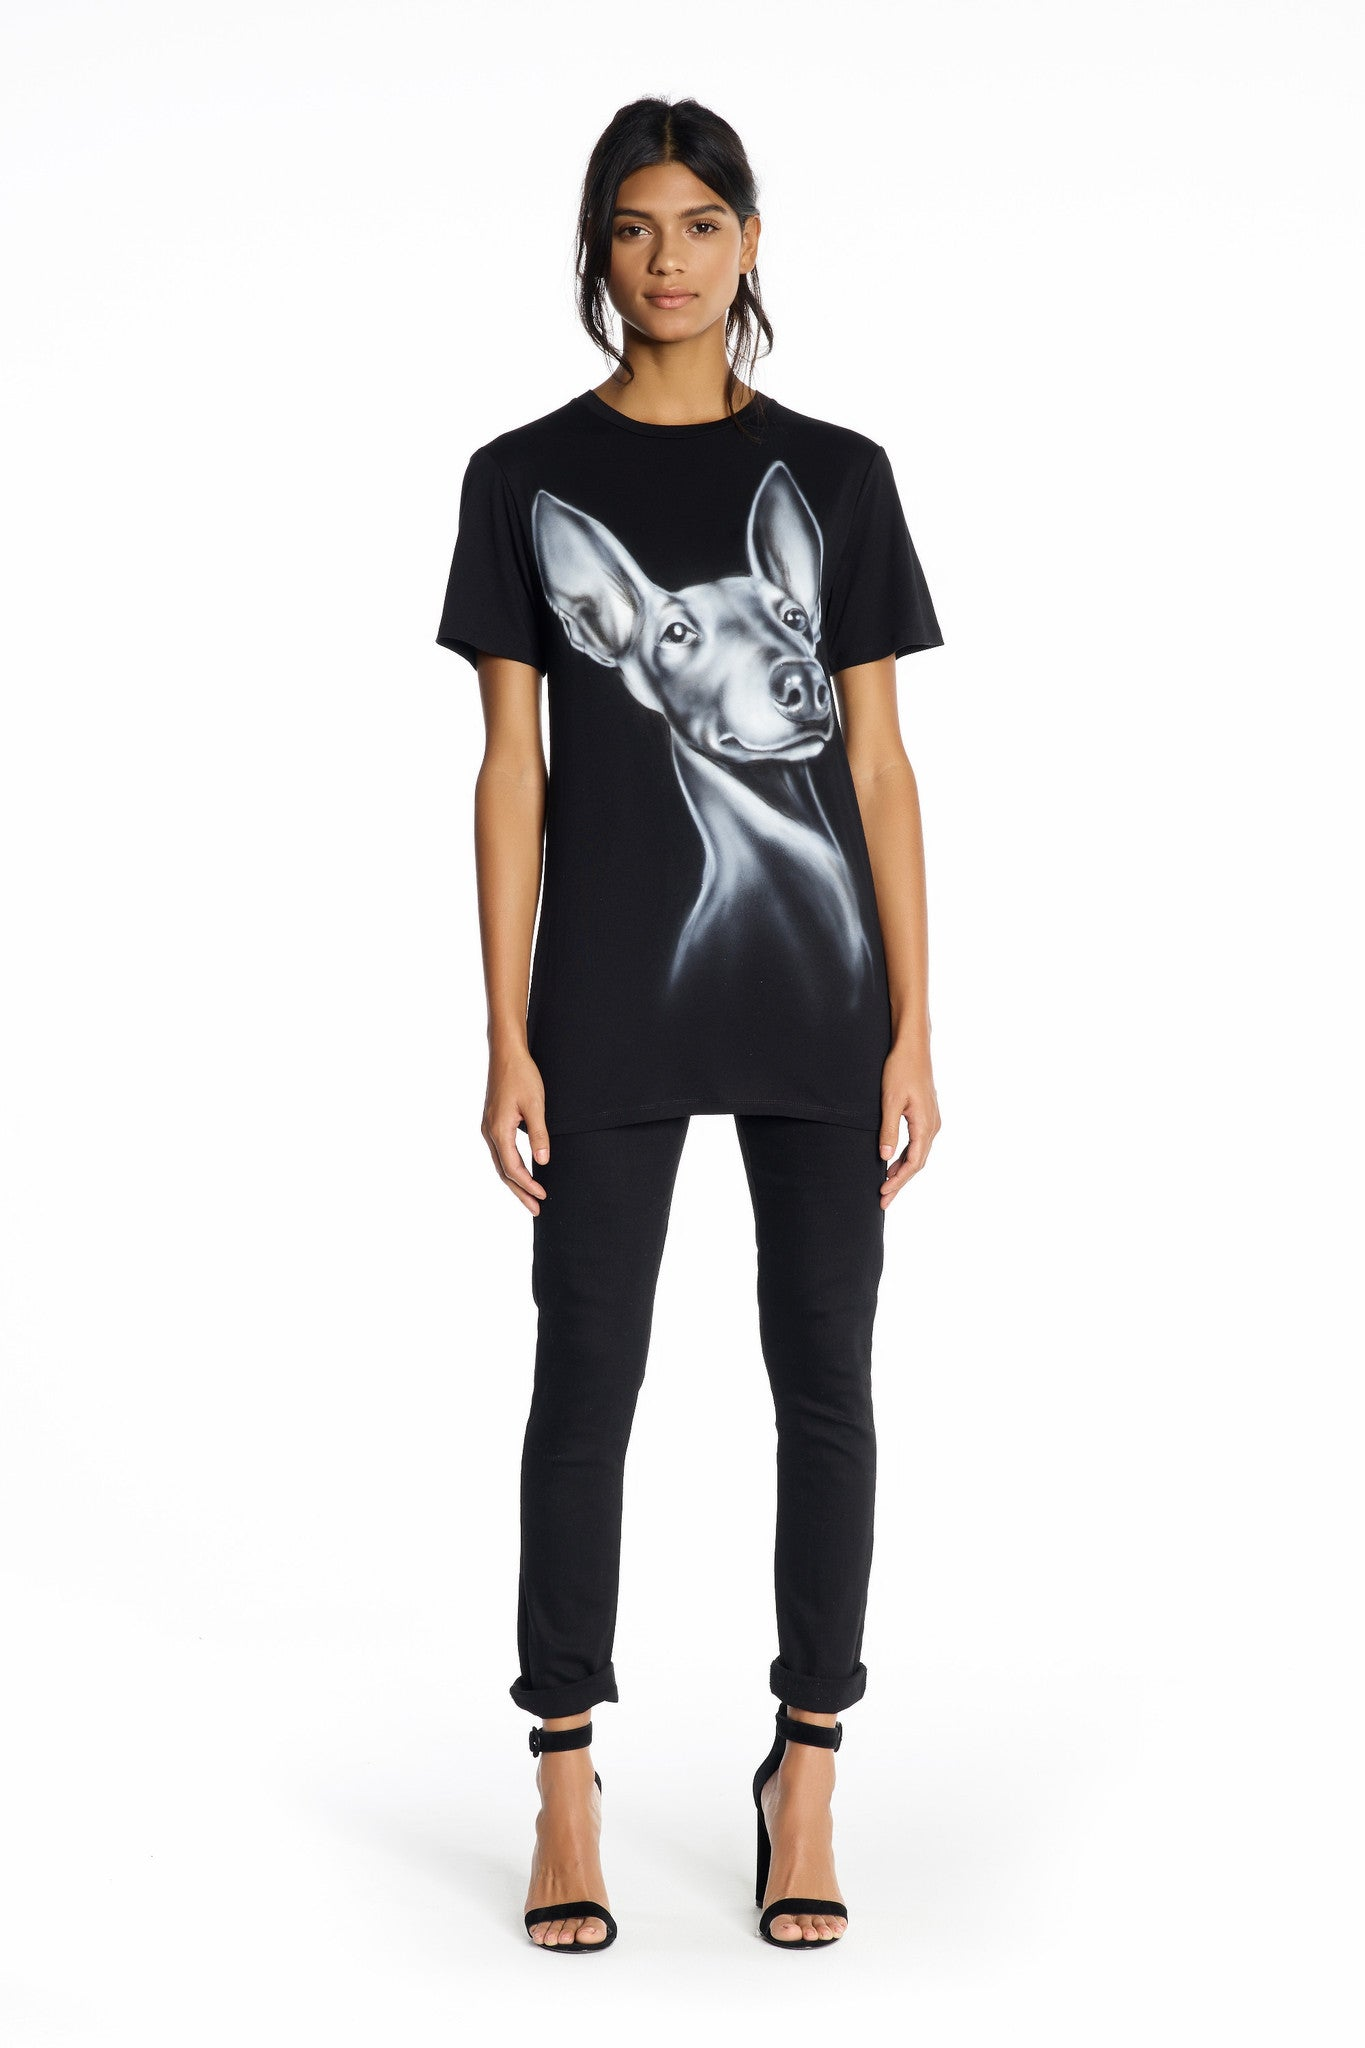 MAJESTIC NORMAN TEE TOPS by KENDALL + KYLIE